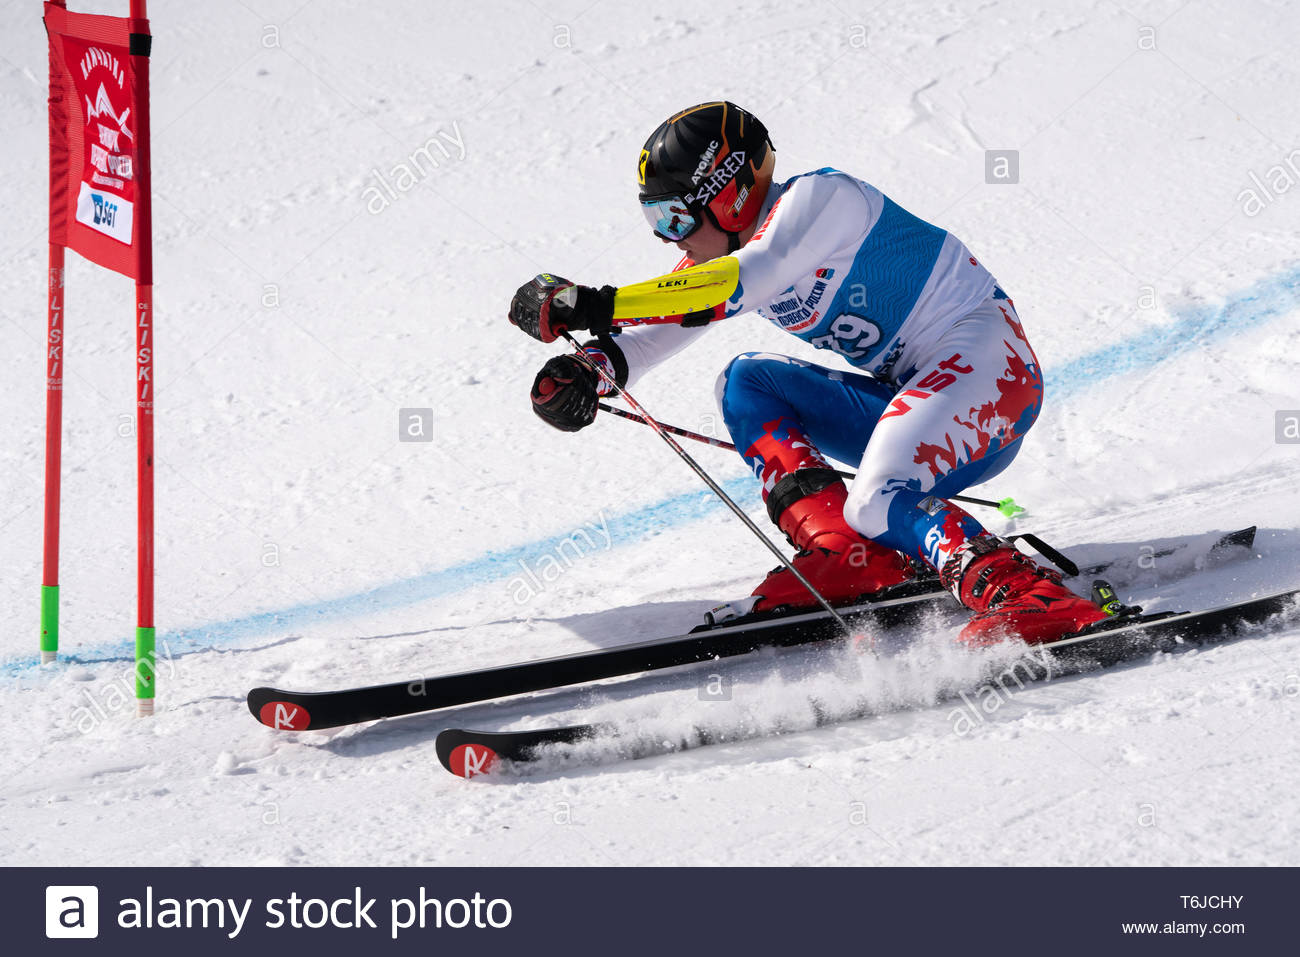 KAMCHATKA PENINSULA, RUSSIA - APR 1, 2019: Russian Alpine Skiing Cup, International Ski Federation (FIS) Championship, giant slalom. Mount skier Konst - Stock Image